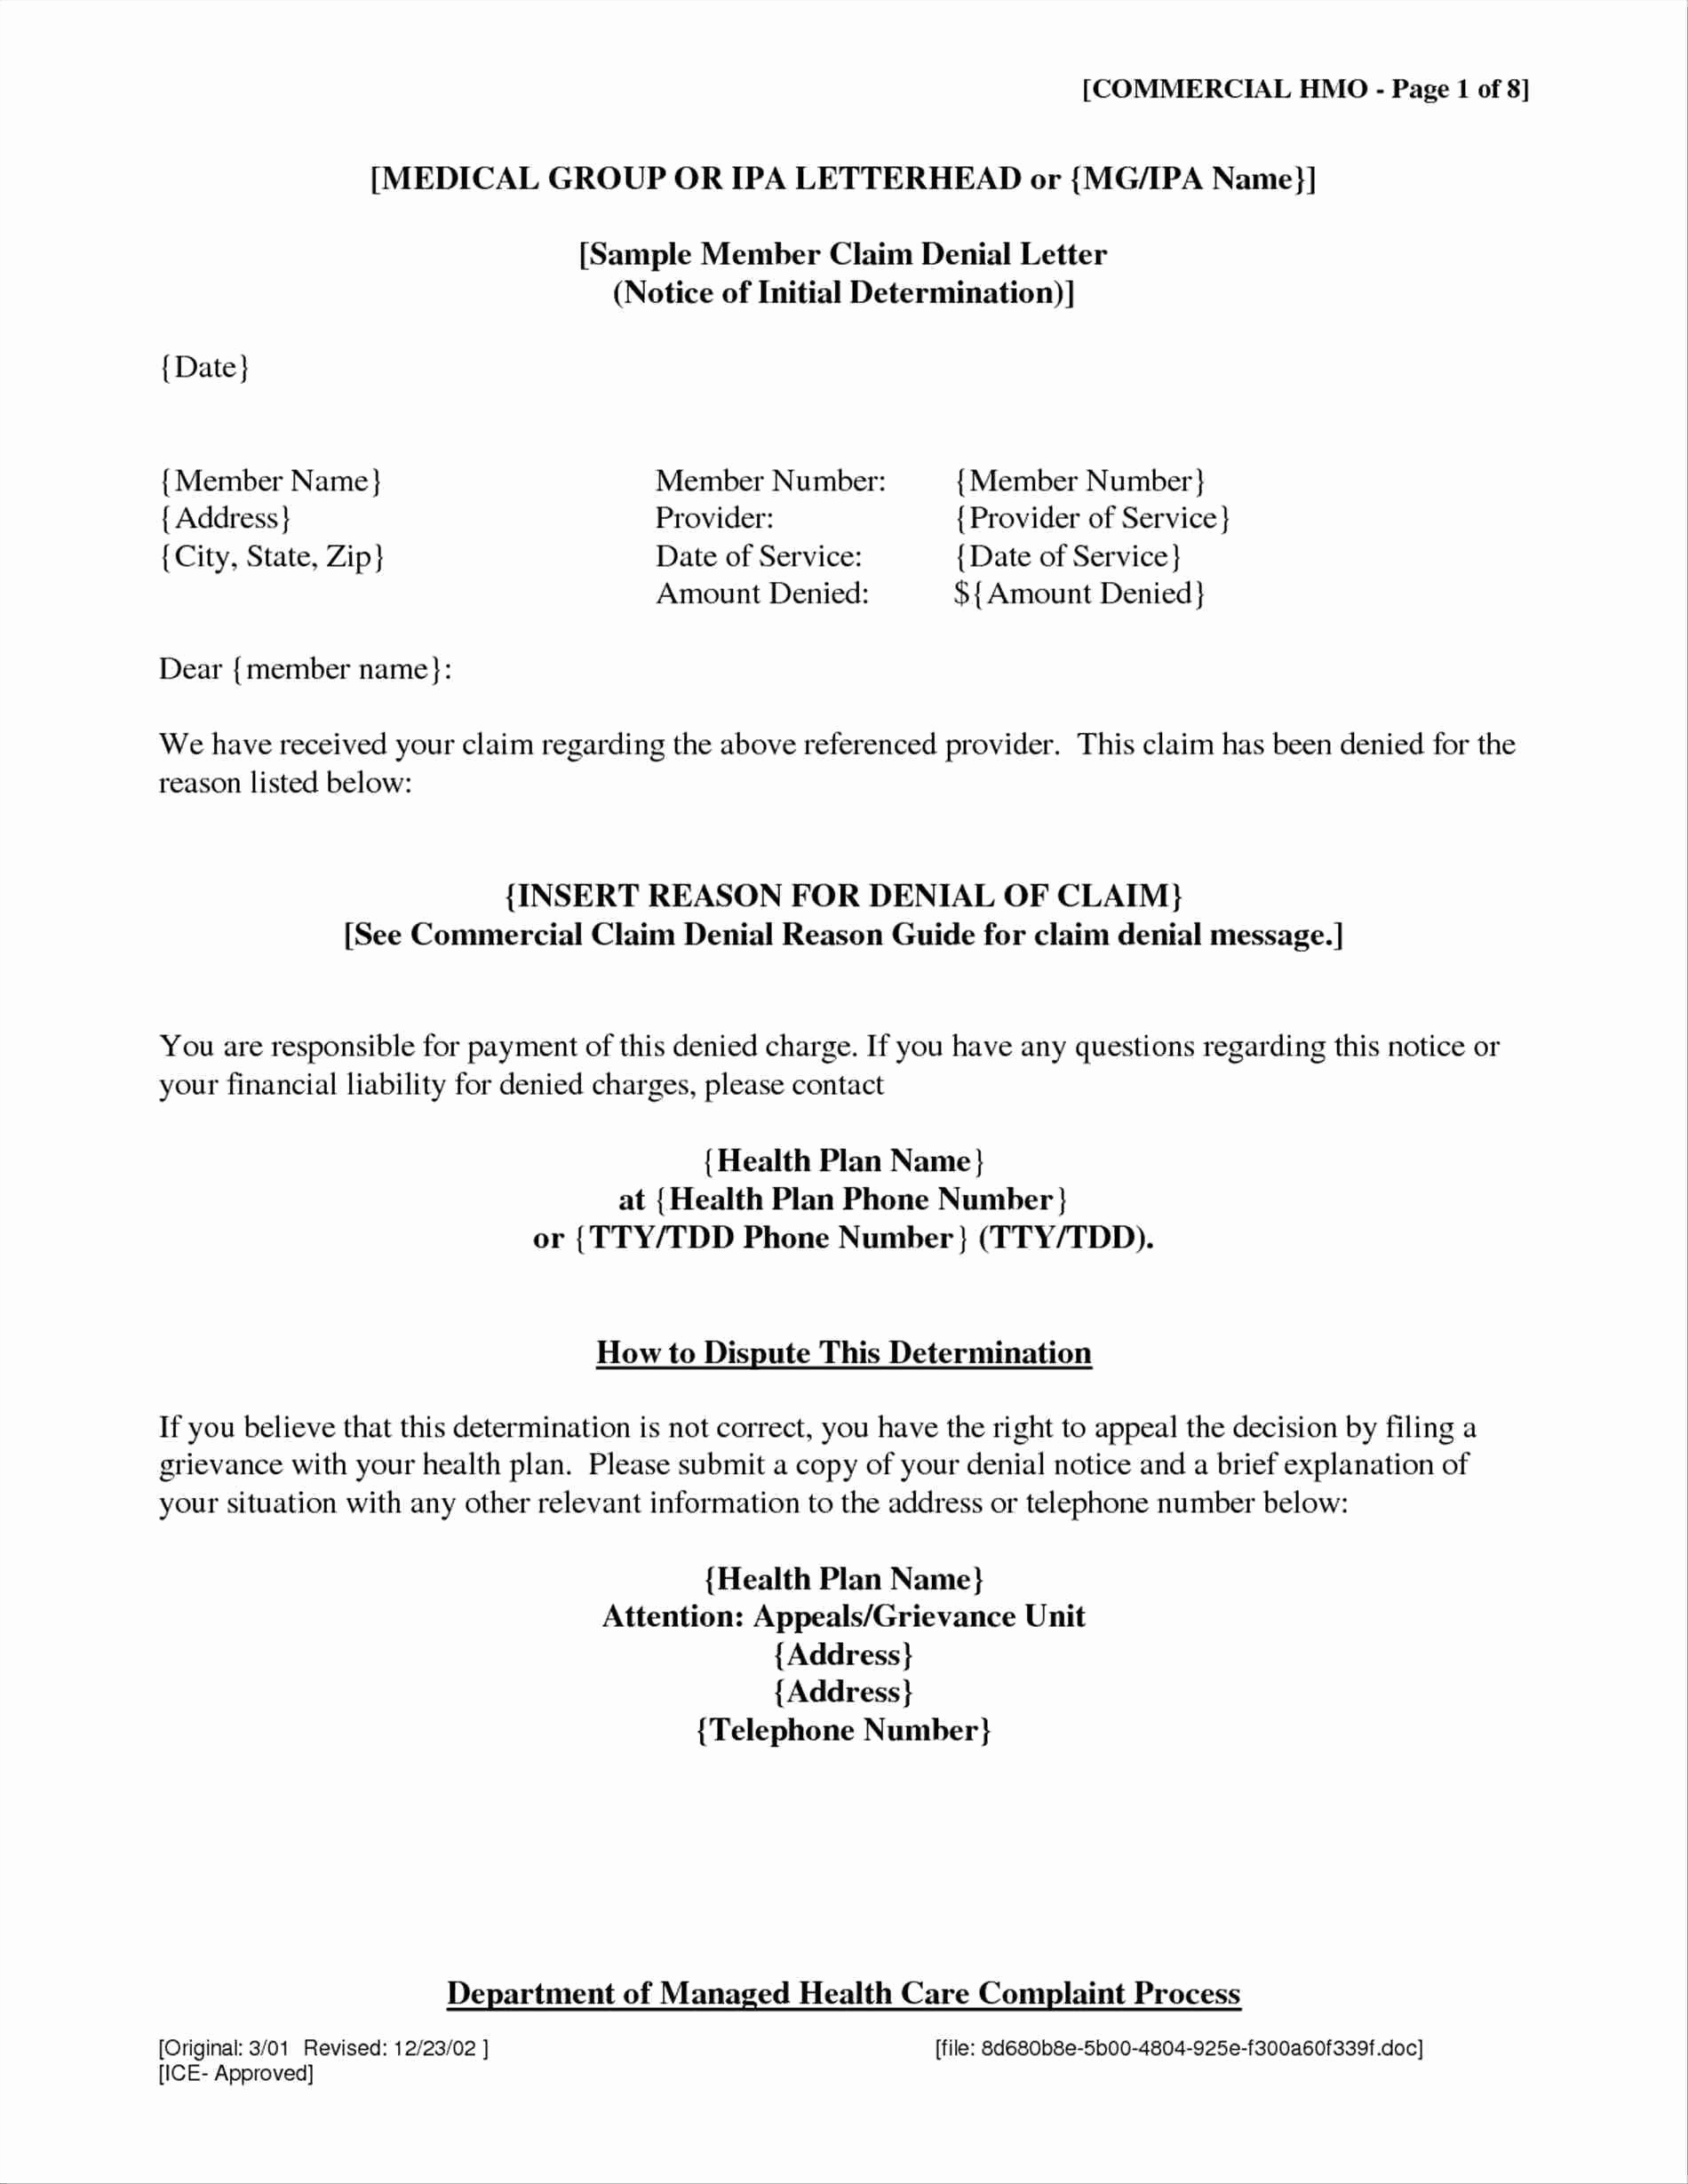 Property Tax Appeal Letter Template - Property Tax assessment Appeal Letter New Pdf Objection Hearing